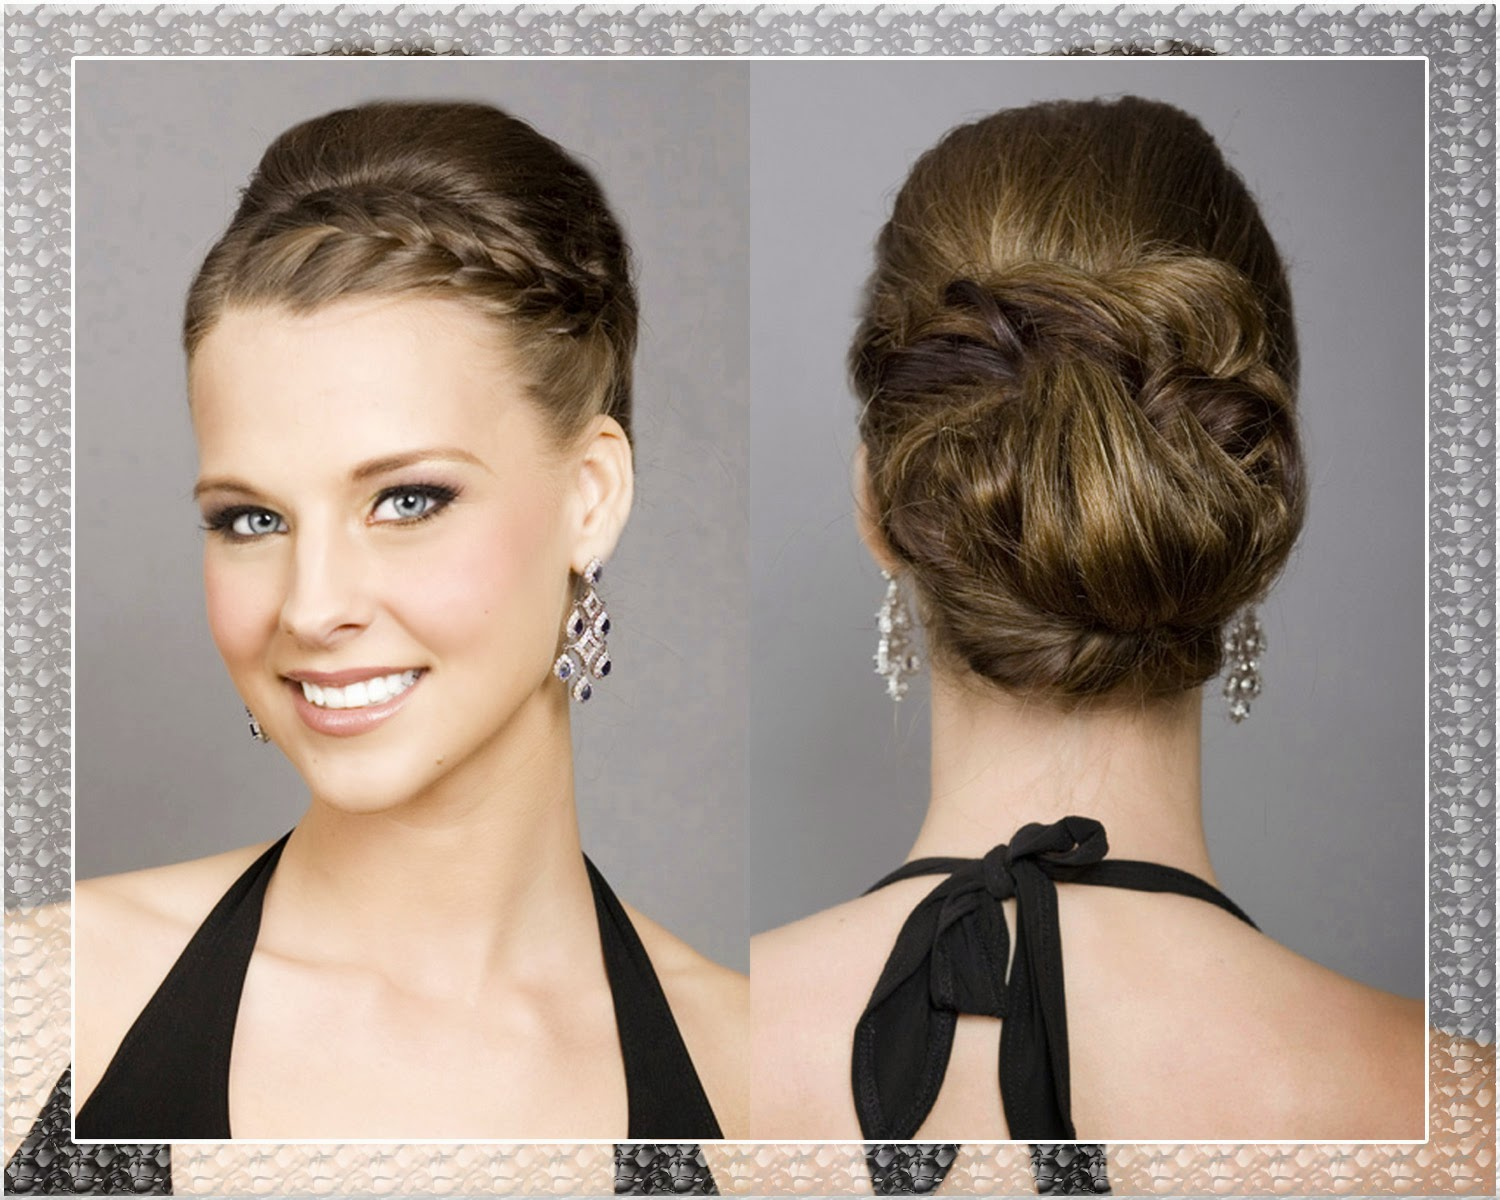 Hairstyles For Weddings Bridesmaid